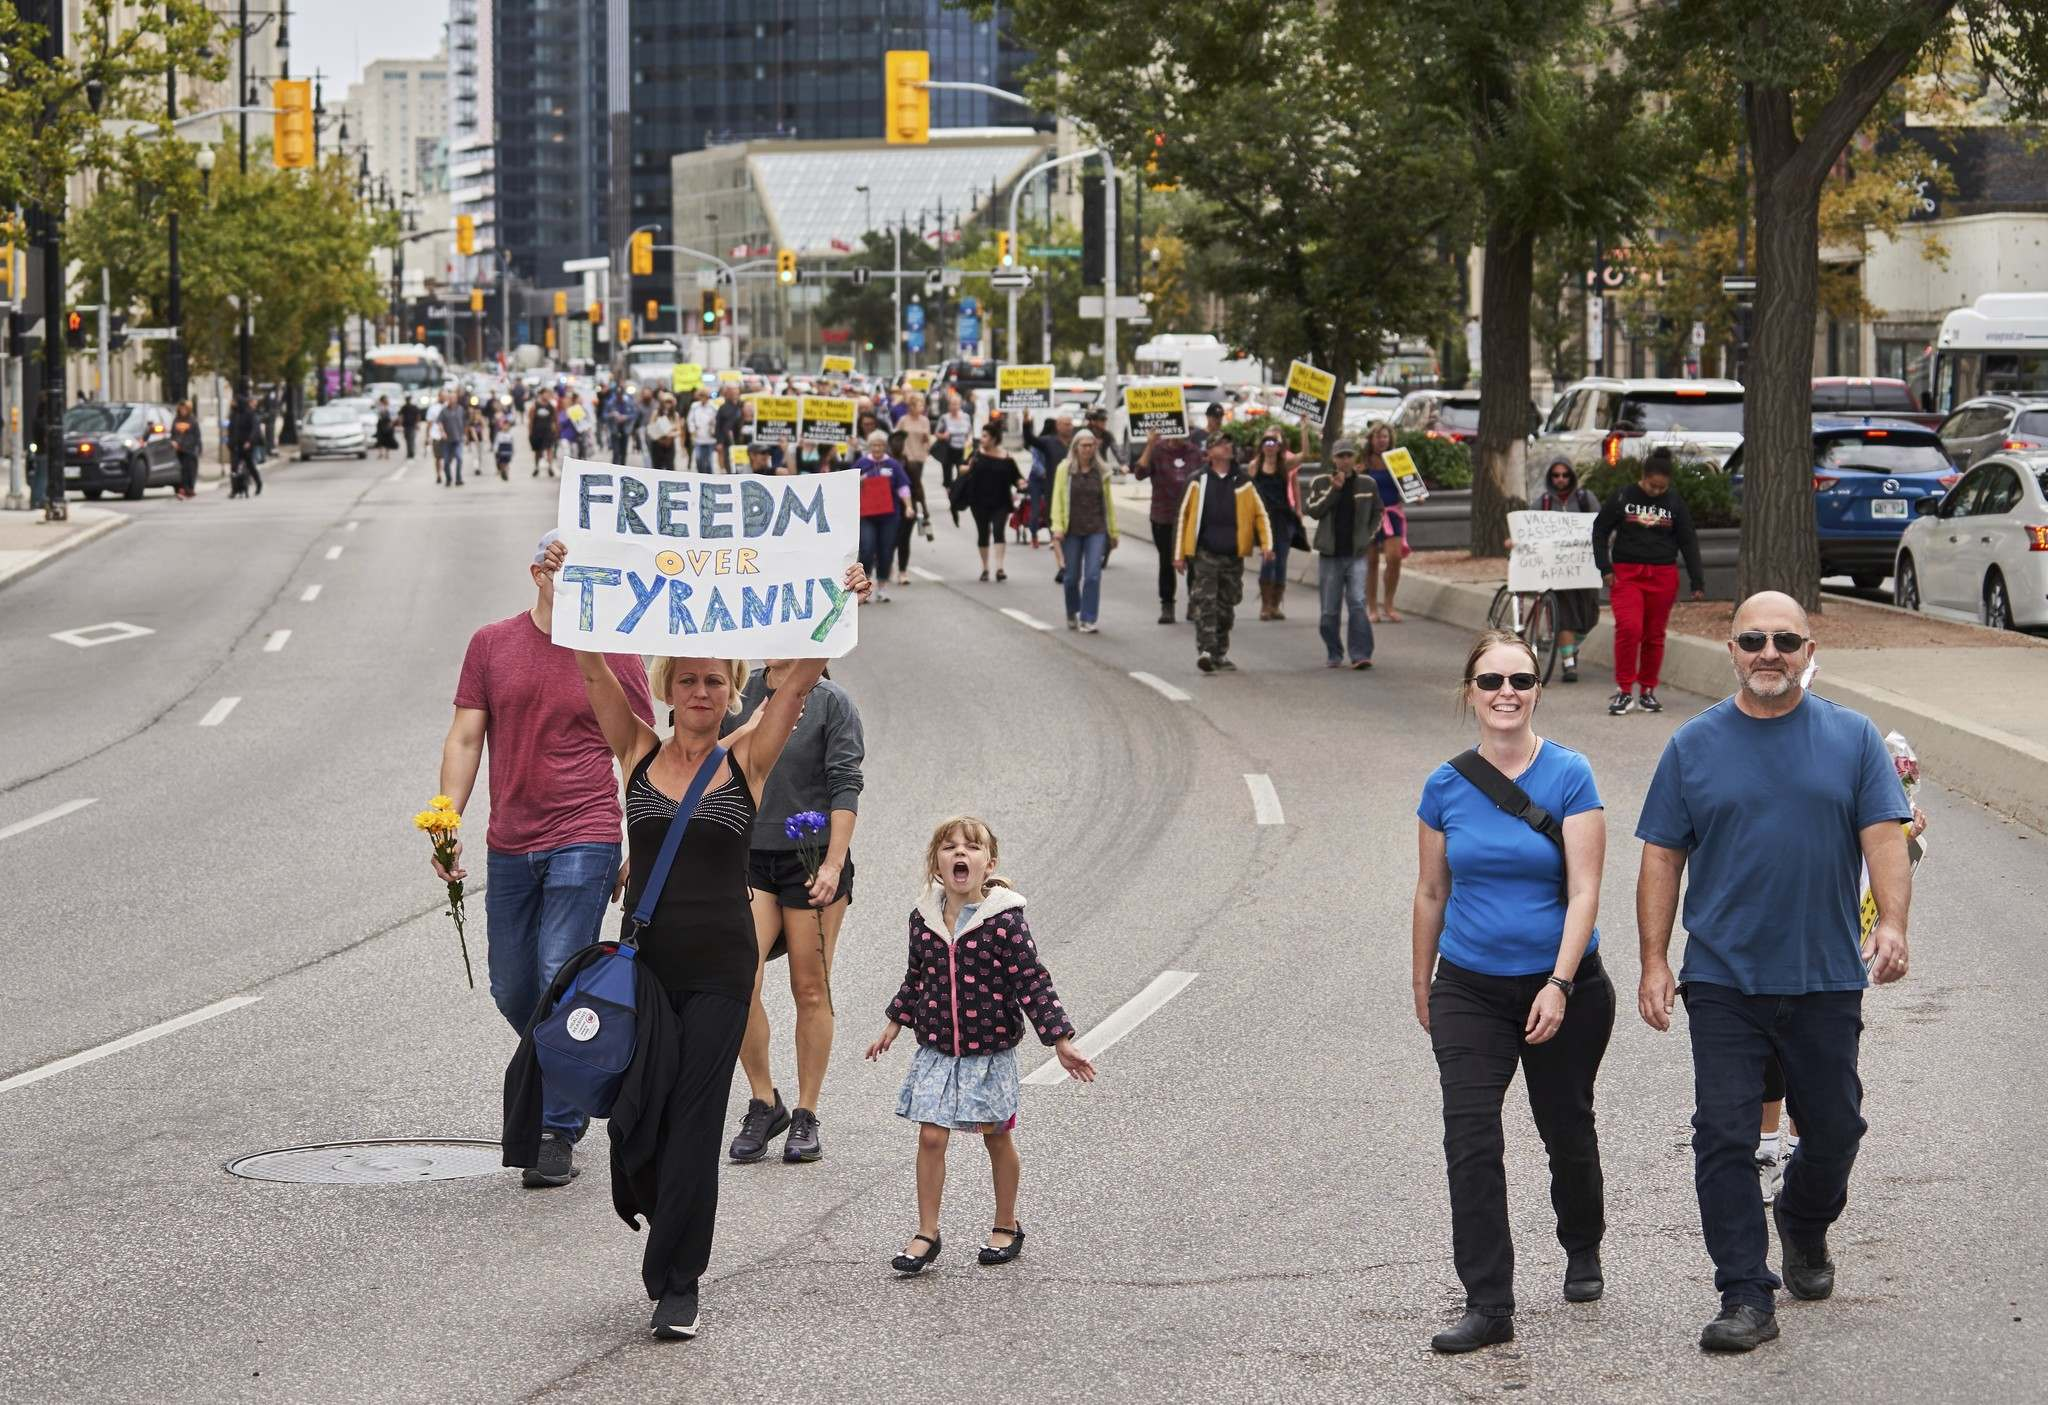 Protesters marched from the Manitoba Legislative Building to Winnipeg city hall on Sept. 13 after the rally was moved from HSC. (David Lipnowski / The Canadian Press files)